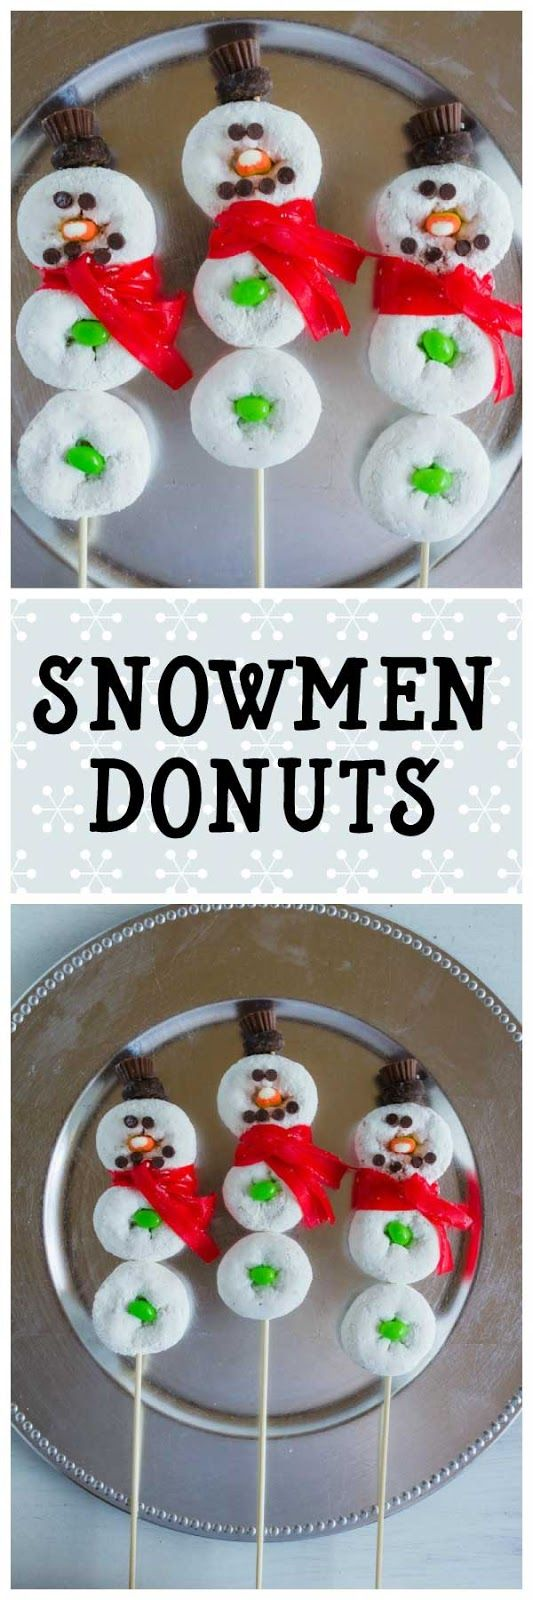 Fun Snowment Donuts!  Perfect to make during the winter months as a surprise treat!